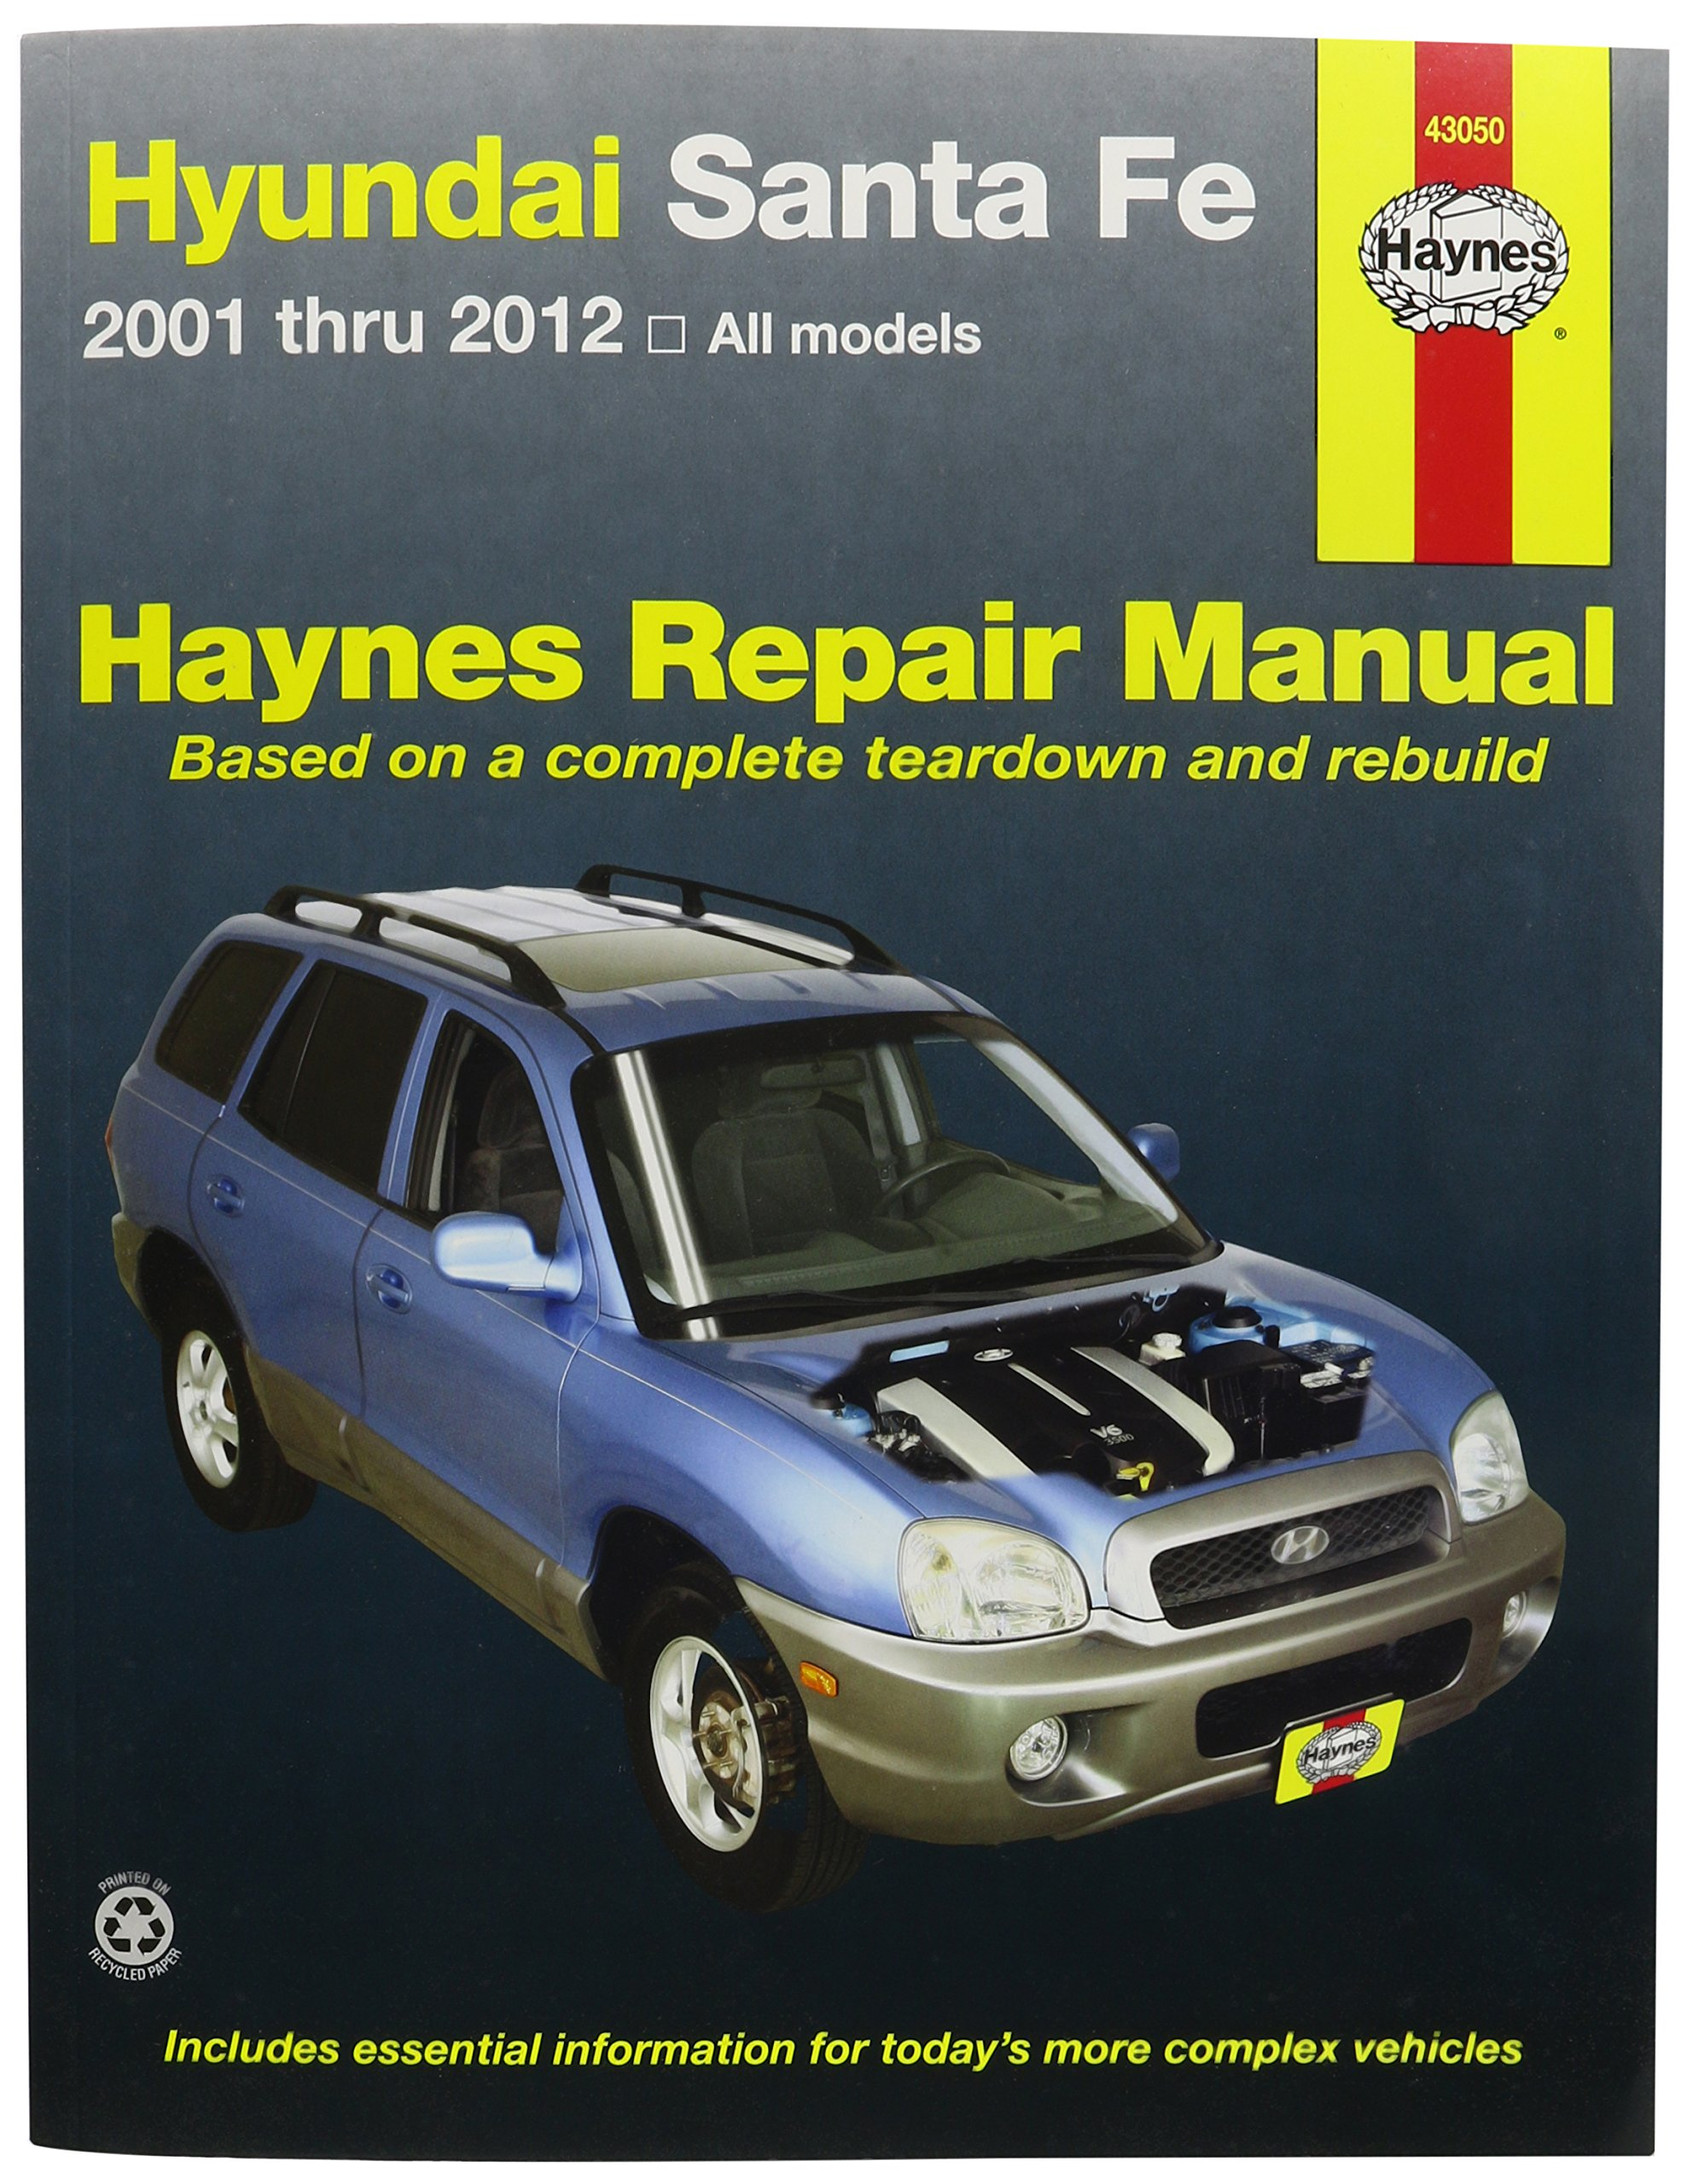 2002 Hyundai Santa Fe Fuse Box Book Content Resource Of Wiring Sonata Diagram Haynes Vc0s2 43050 Manuals Sante 2001 2012 Rh Amazon Com Ford Ranger